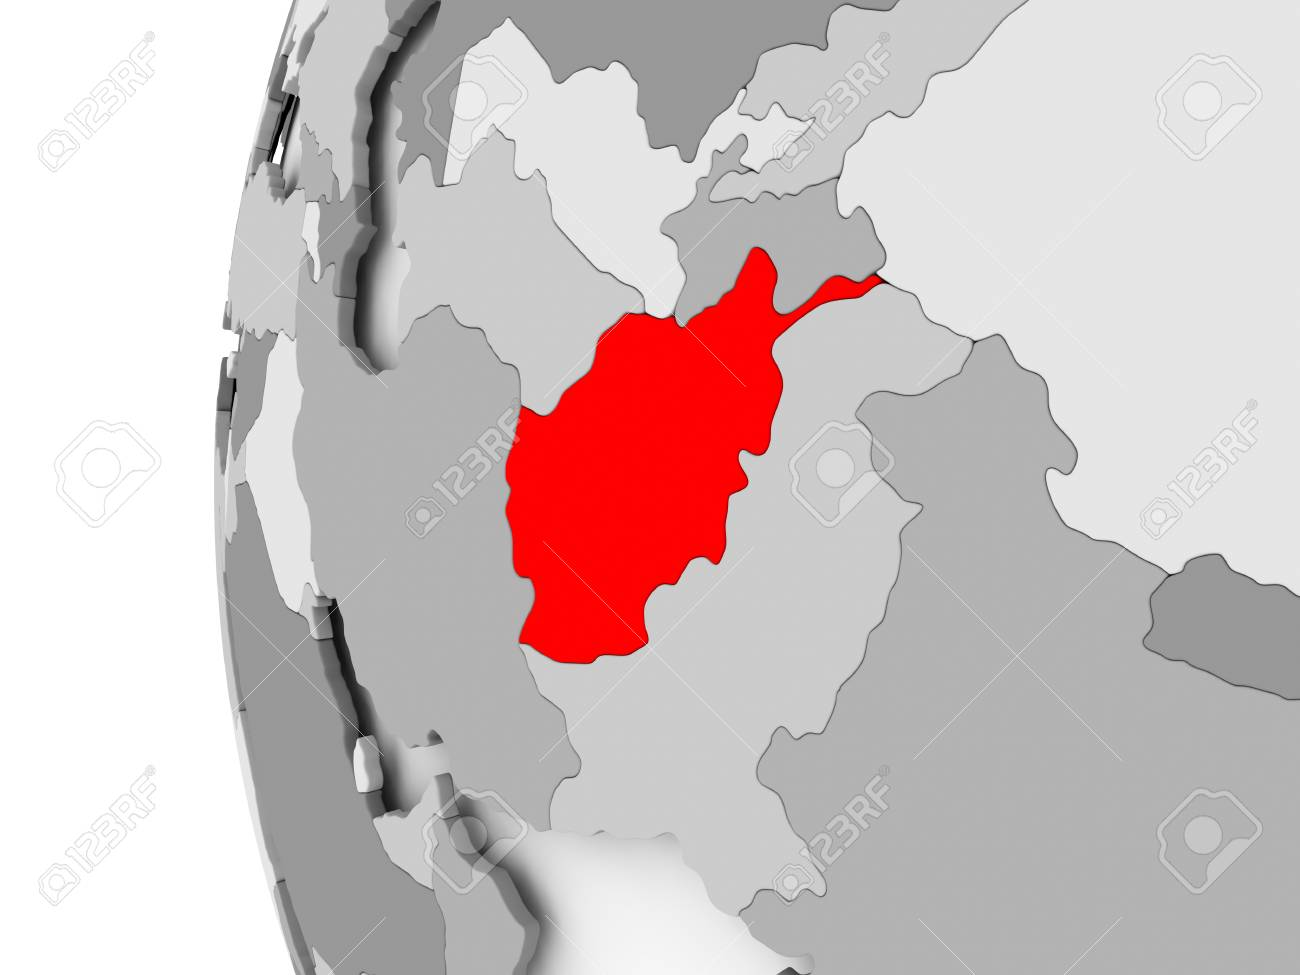 Afghanistan highlighted on grey 3d model of political globe stock afghanistan highlighted on grey 3d model of political globe 3d illustration stock illustration gumiabroncs Image collections